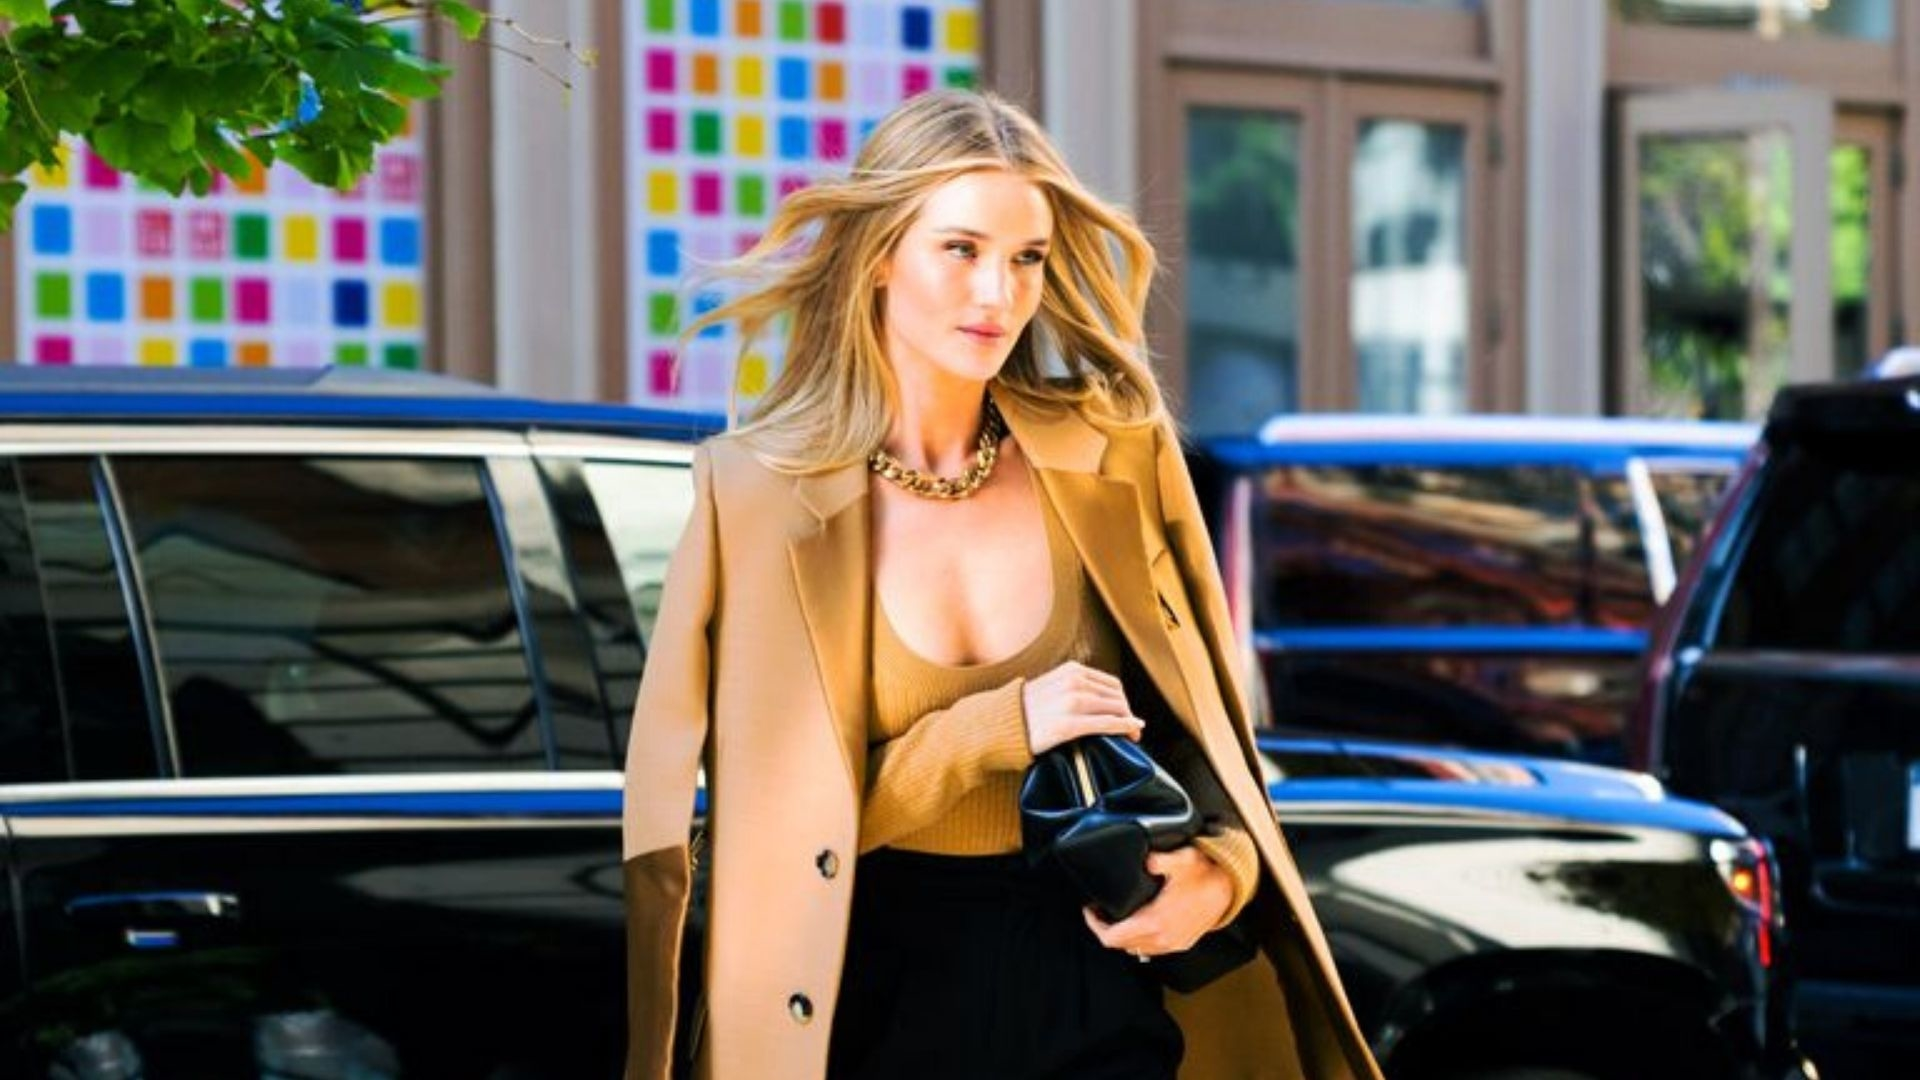 Rosie Huntington-Whiteley's Jimmy Choo Boots Are In The Black Friday Sale